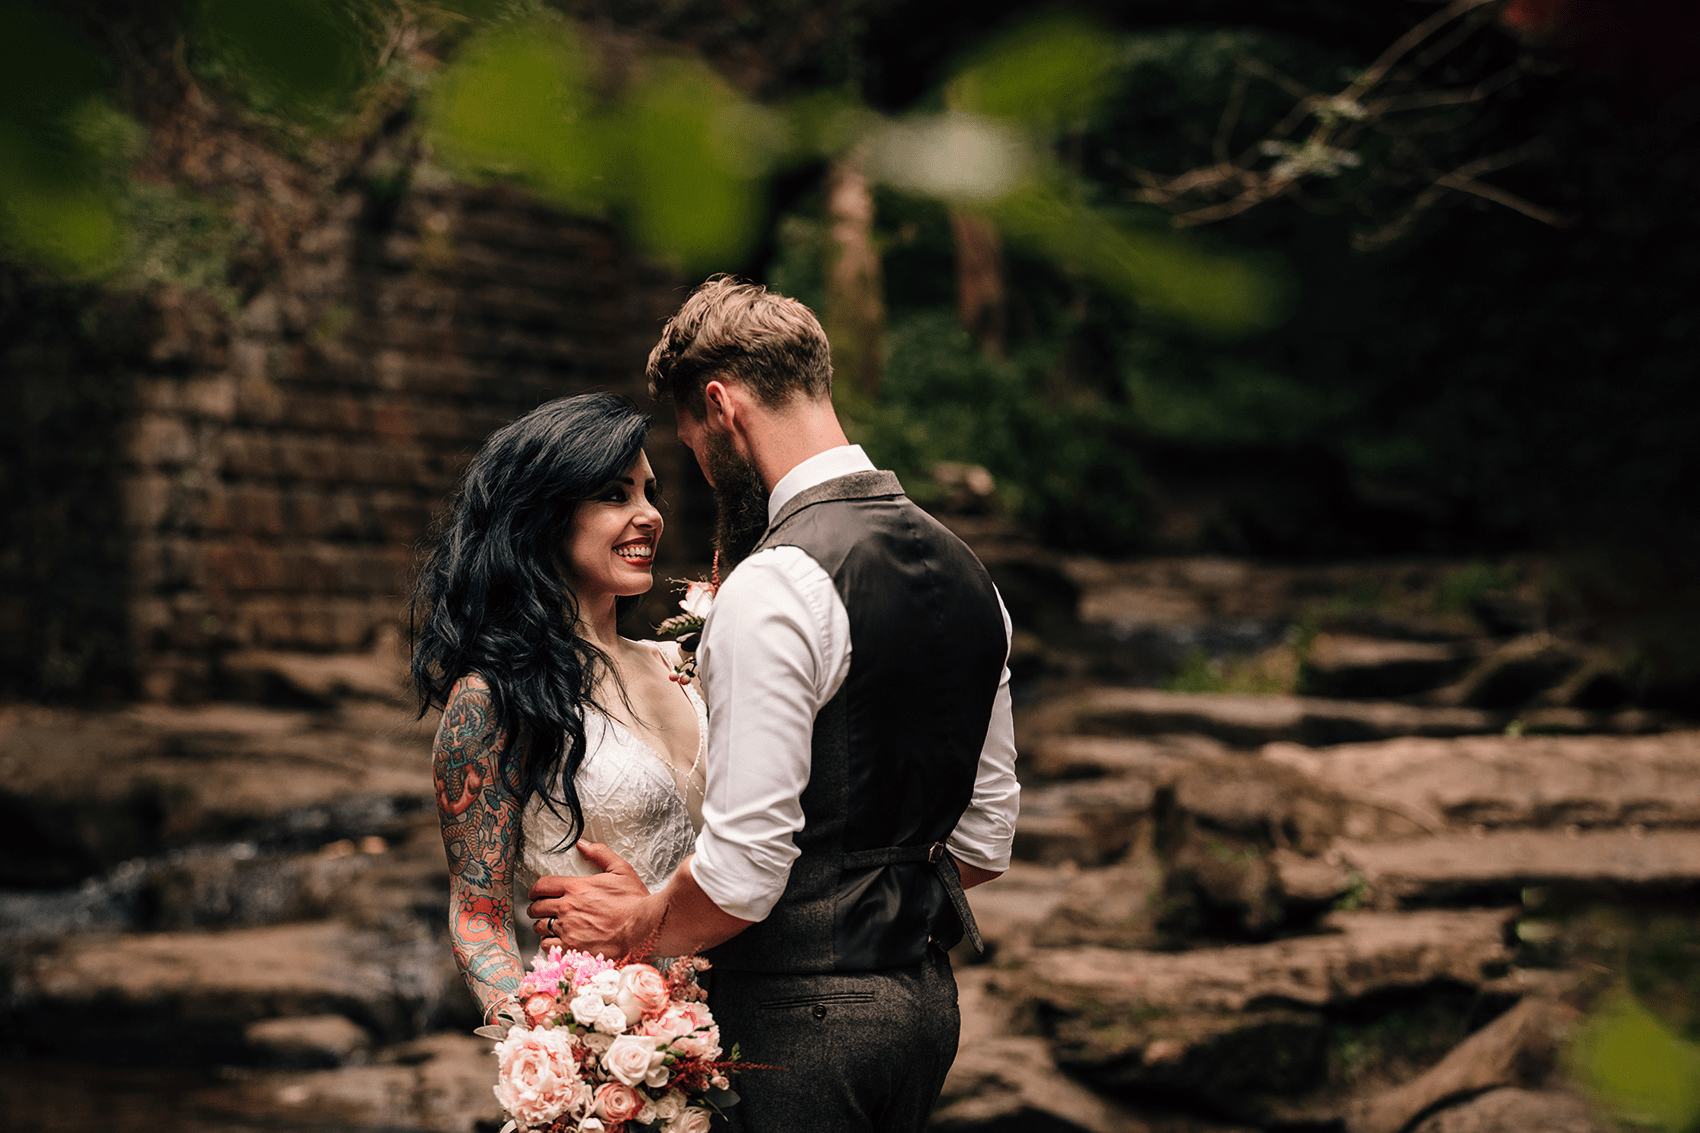 Micro wedding photography pricing packages